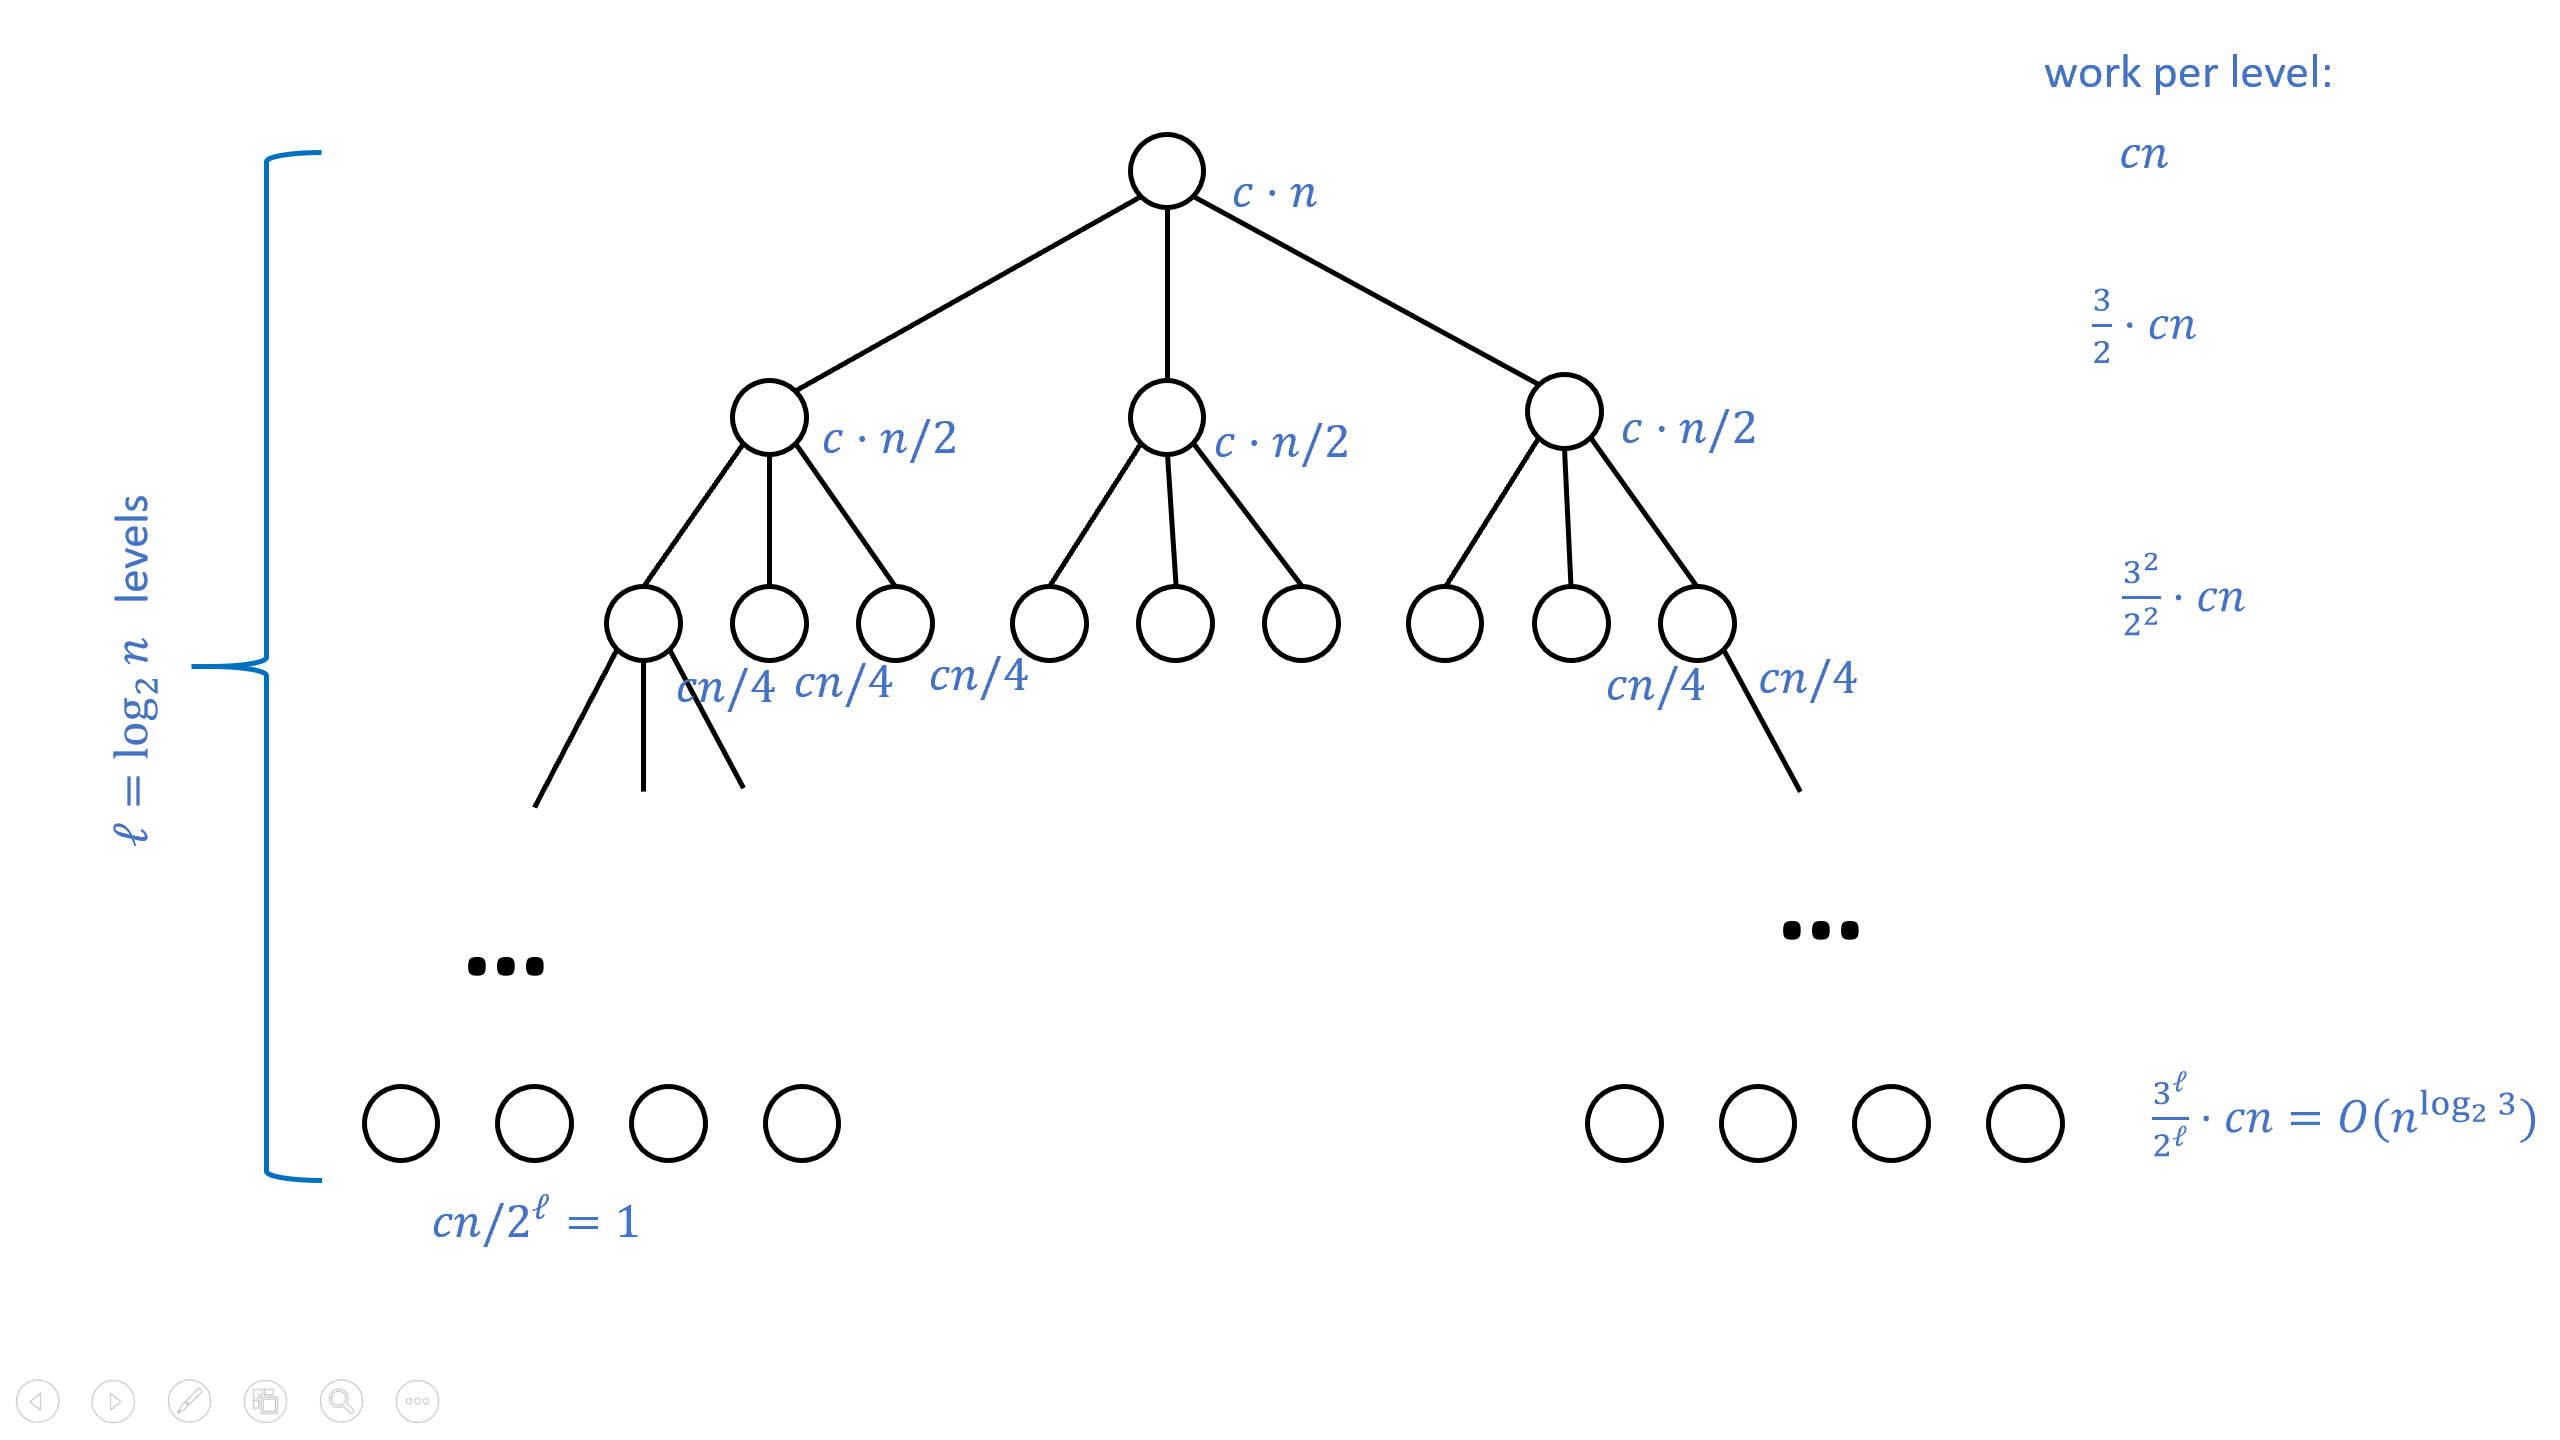 4: Karatsuba's algorithm reduces an n-bit multiplication to three n/2-bit multiplications, which in turn are reduced to nine n/4-bit multiplications and so on. We can represent the computational cost of all these multiplications in a 3-ary tree of depth \log_2 n, where at the root the extra cost is cn operations, at the first level the extra cost is c(n/2) operations, and at each of the 3^i nodes of level i, the extra cost is c(n/2^i). The total cost is cn\sum_{i=0}^{\log_2 n} (3/2)^i \leq 10cn^{\log_2 3} by the formula for summing a geometric series.